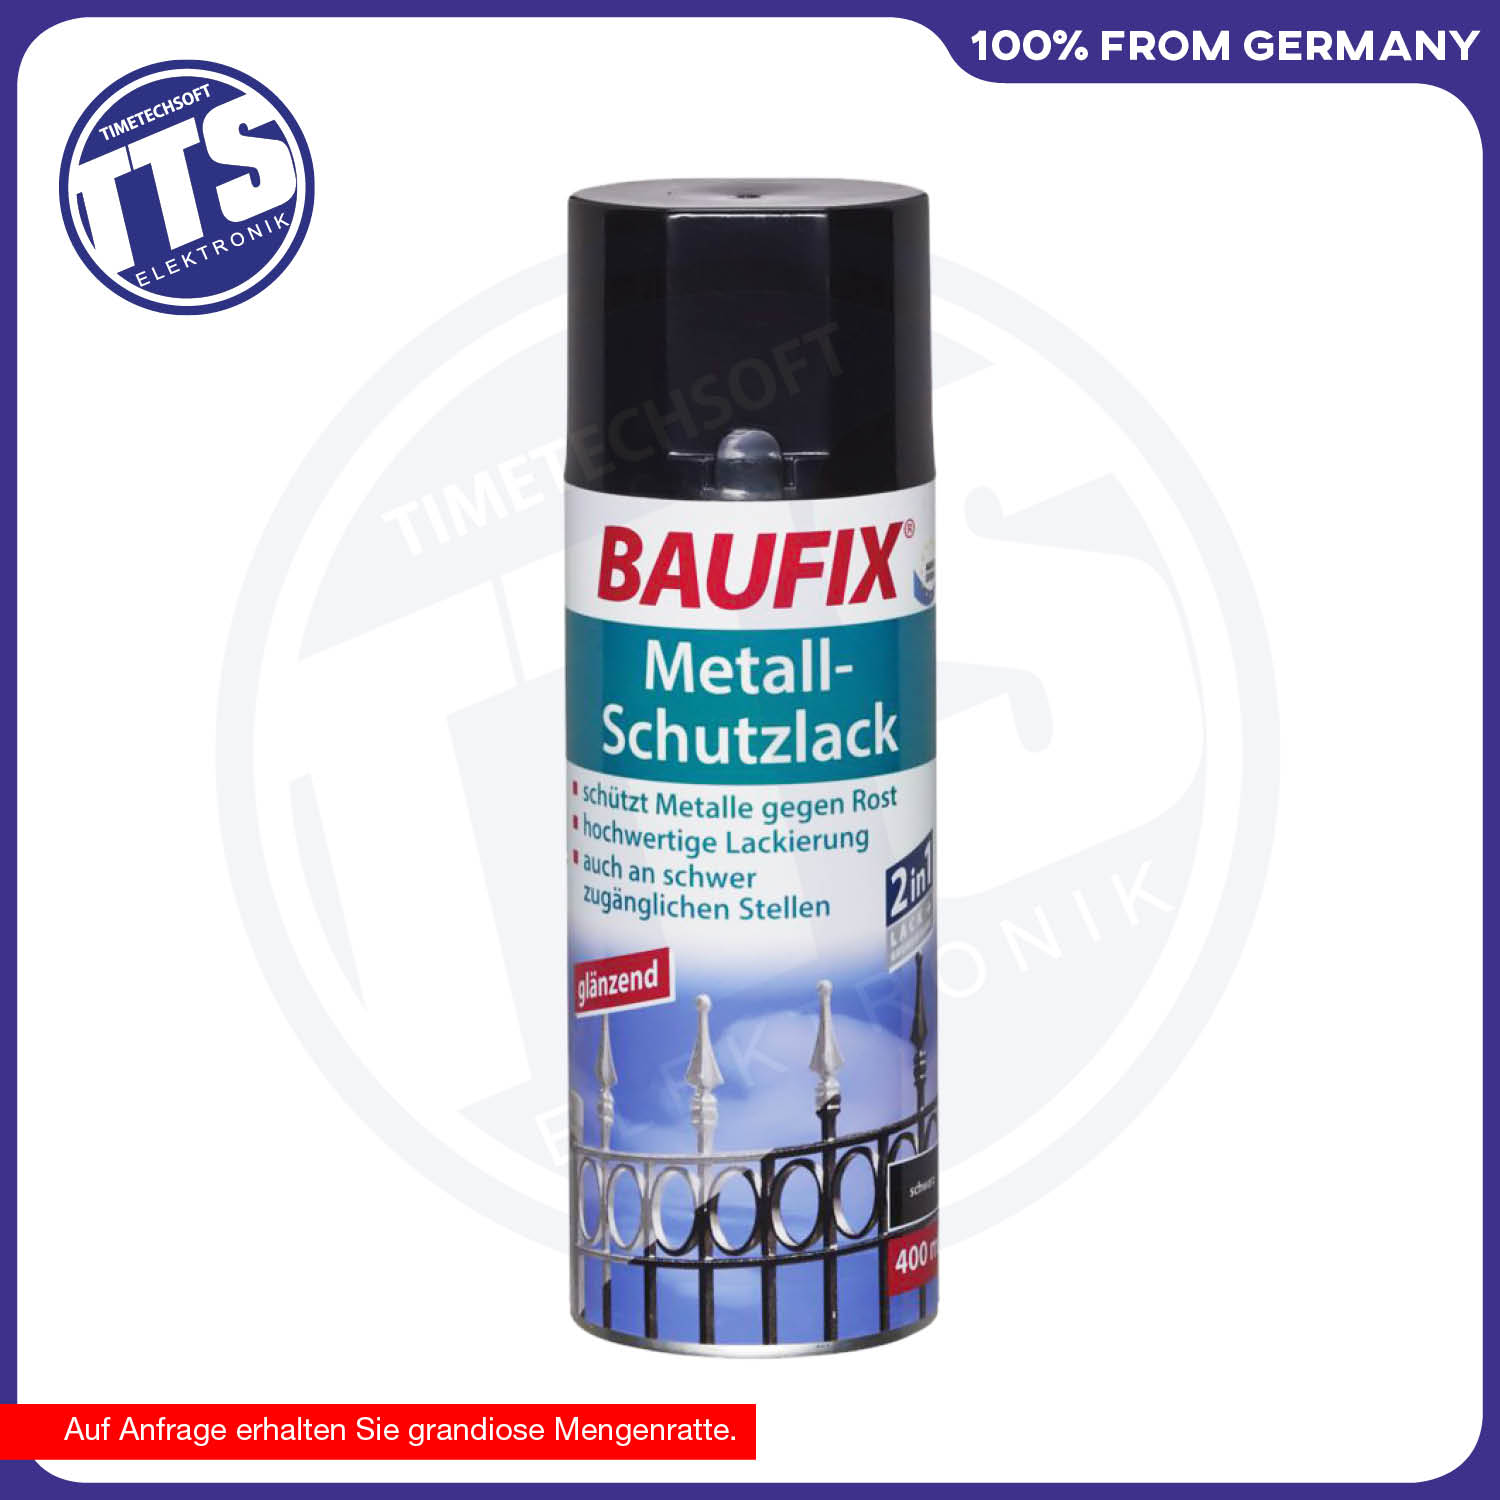 baufix metall schutzlack spr hdose 400 ml schwarz ebay. Black Bedroom Furniture Sets. Home Design Ideas